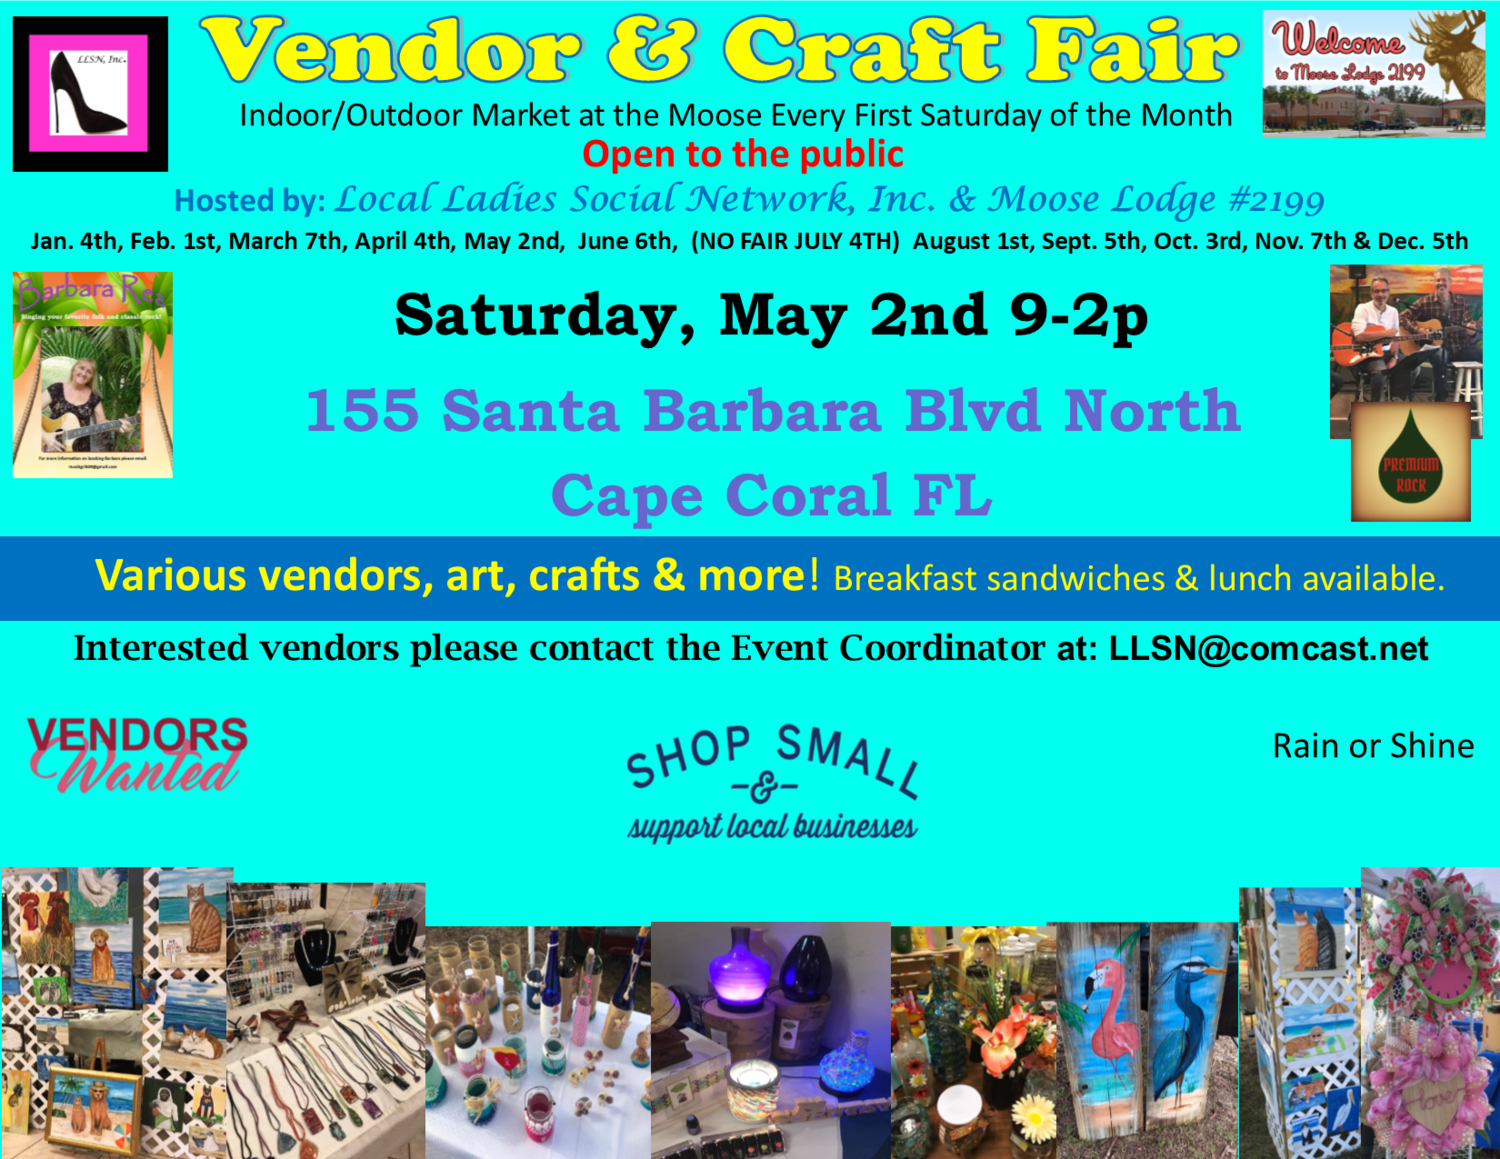 Vendor & Craft Fair- May 2nd INSIDE SPOT- Includes table & chairs